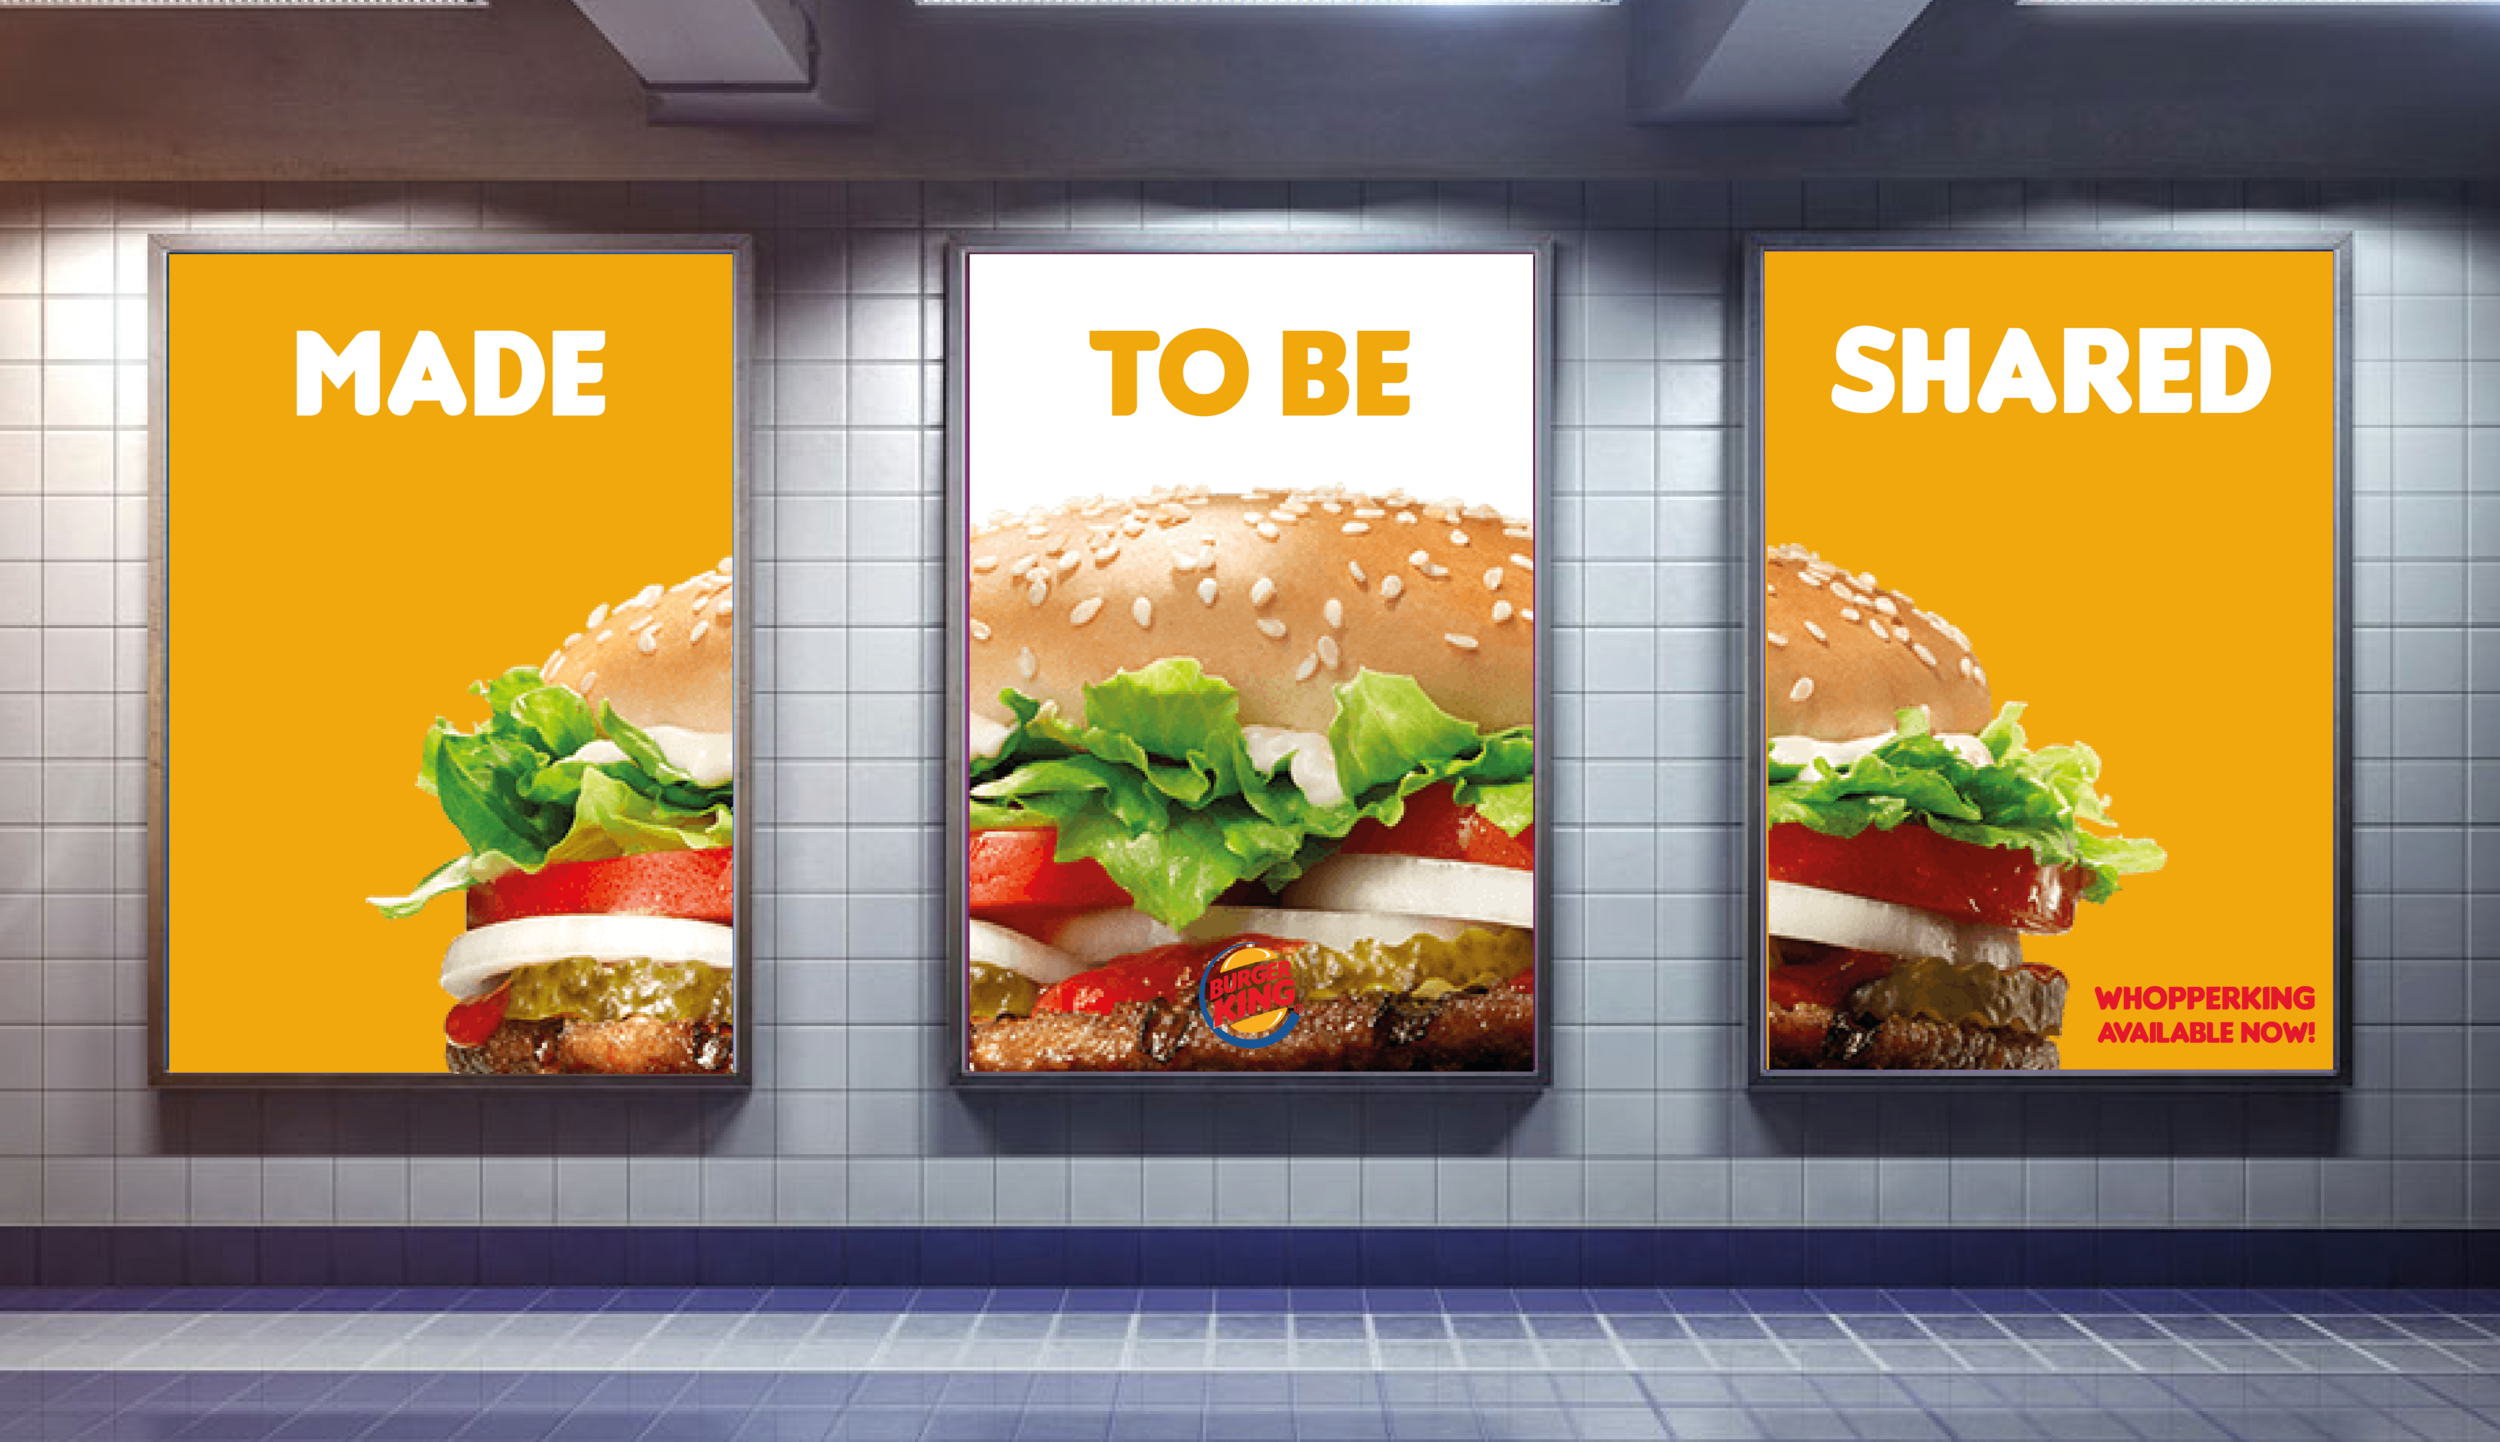 Whopperkingbillboard1.2.png